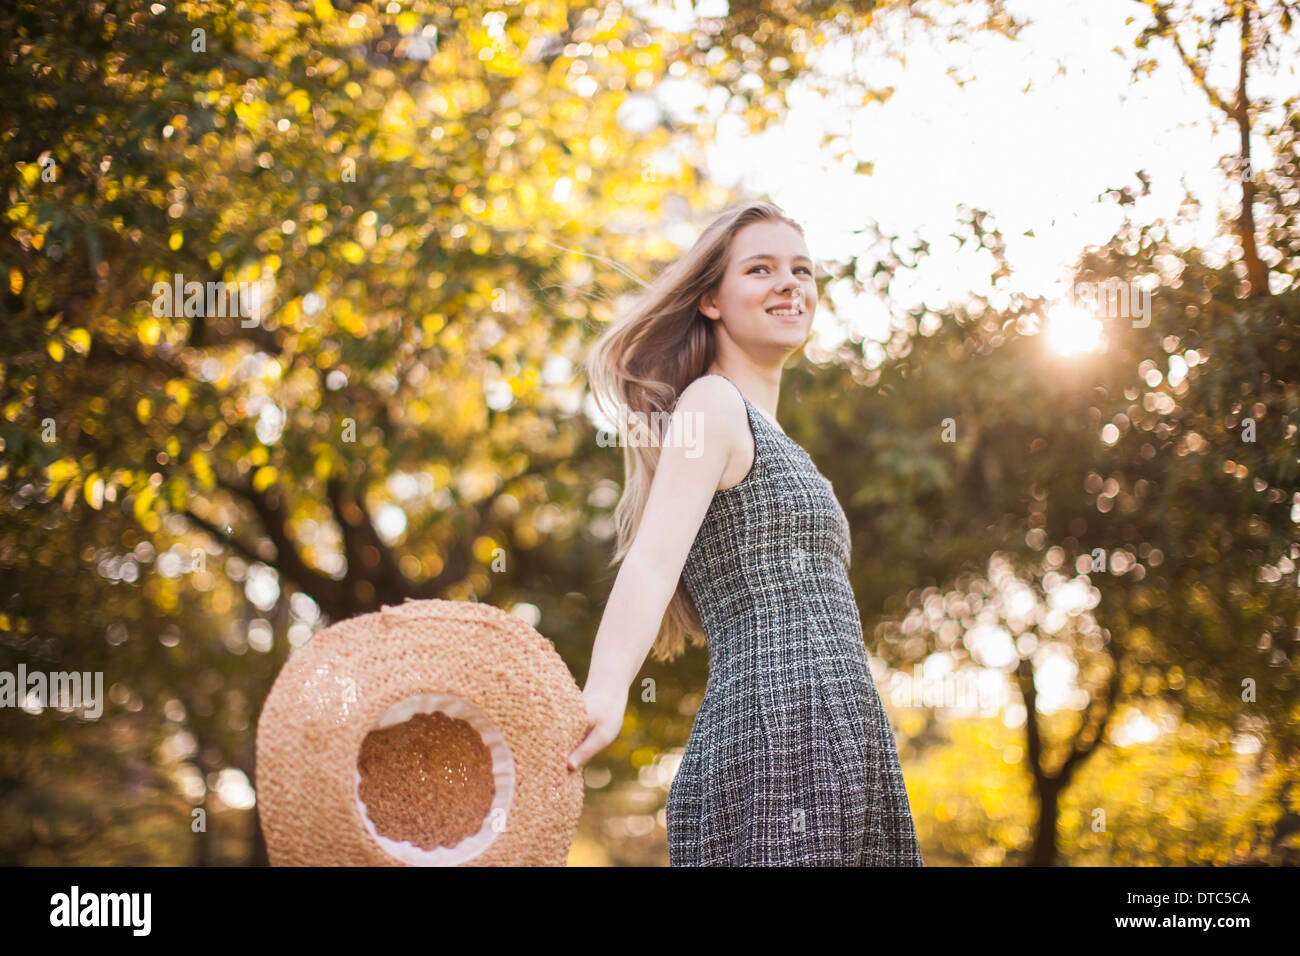 Teenage girl holding chapeau running in park Banque D'Images